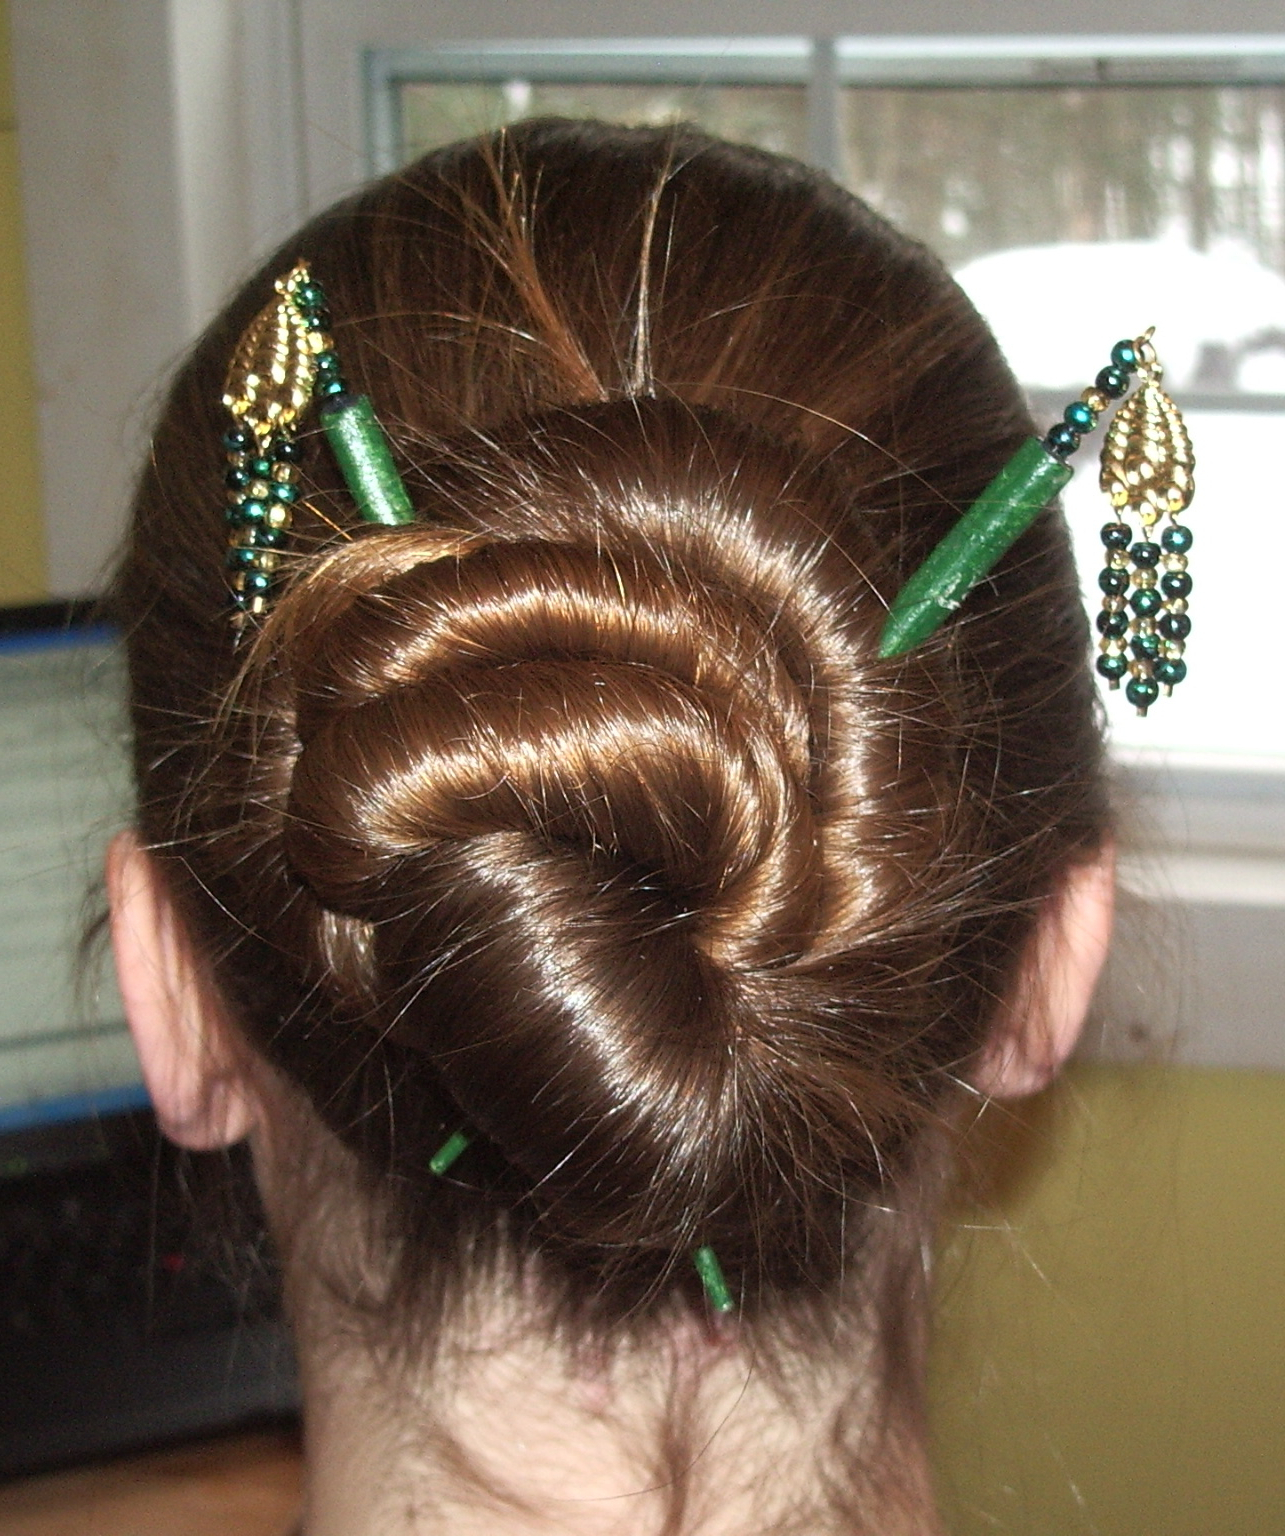 Hairstyles For Hair Sticks: 9 Steps (With Pictures) Inside Widely Used Cinnamon Bun Braided Hairstyles (View 12 of 20)